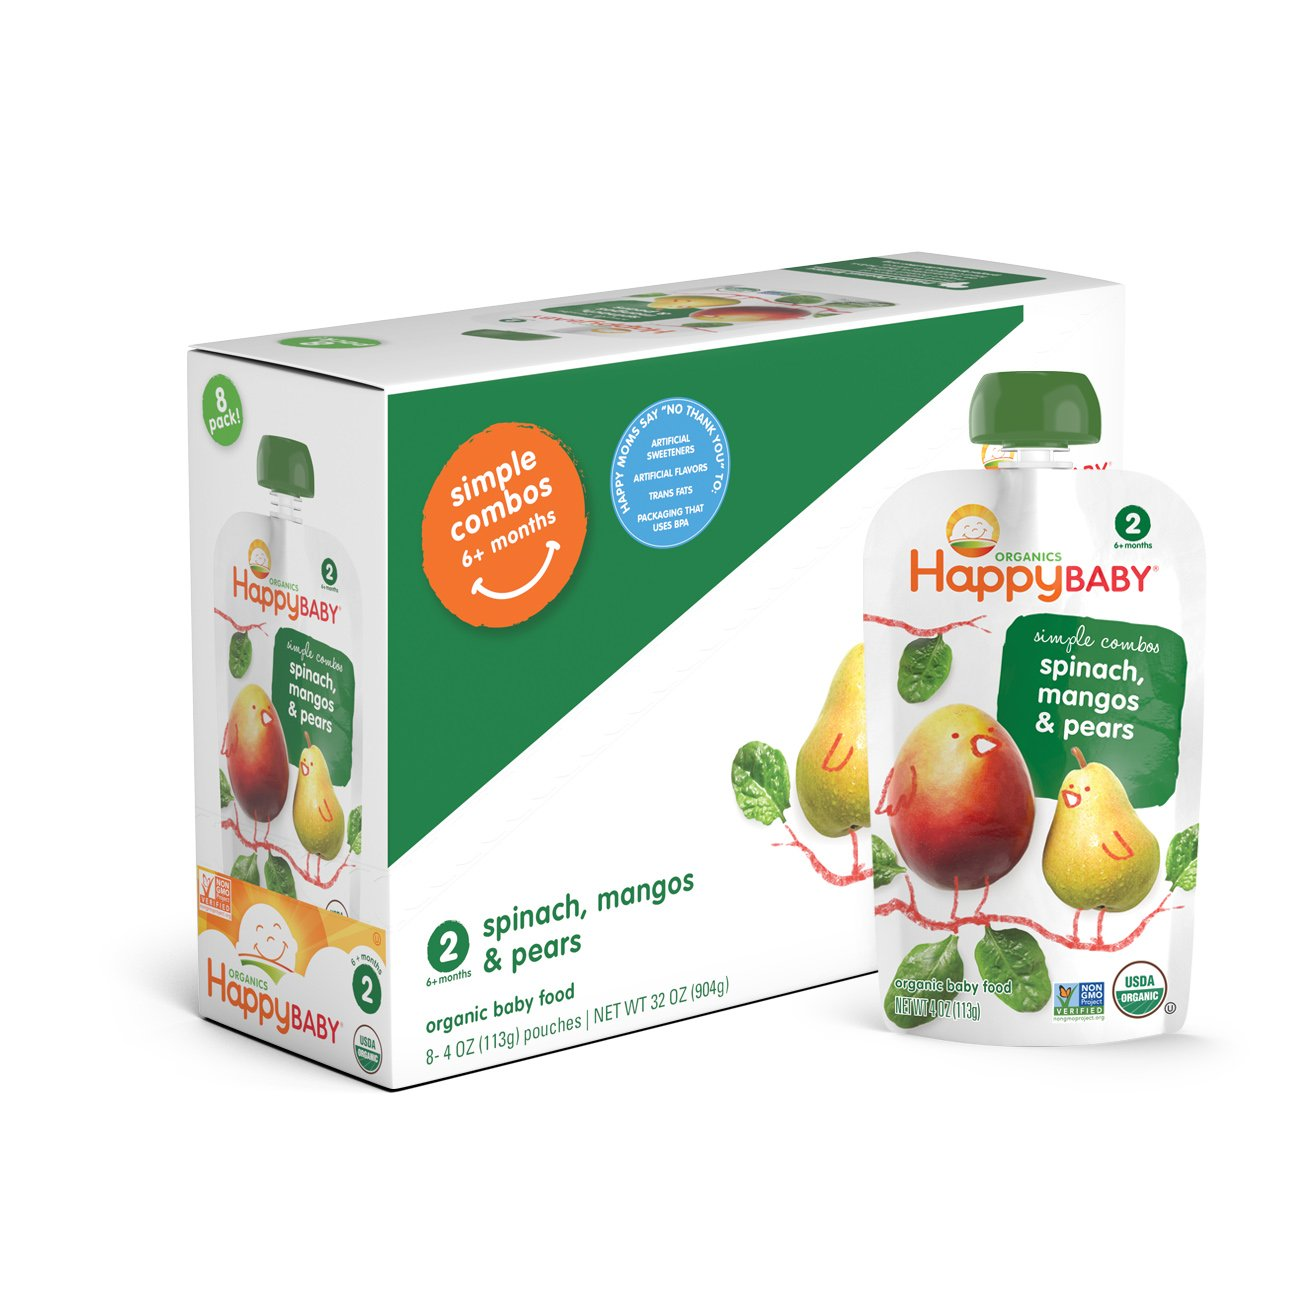 Happy Baby Organic Stage 2 Baby Food Simple Combos Pear Mango Spinach, 4 Ounce Pouch (Pack of 8) Resealable Baby Food Pouches, Fruit & Veggie Puree, Organic Non-GMO Gluten Free Kosher